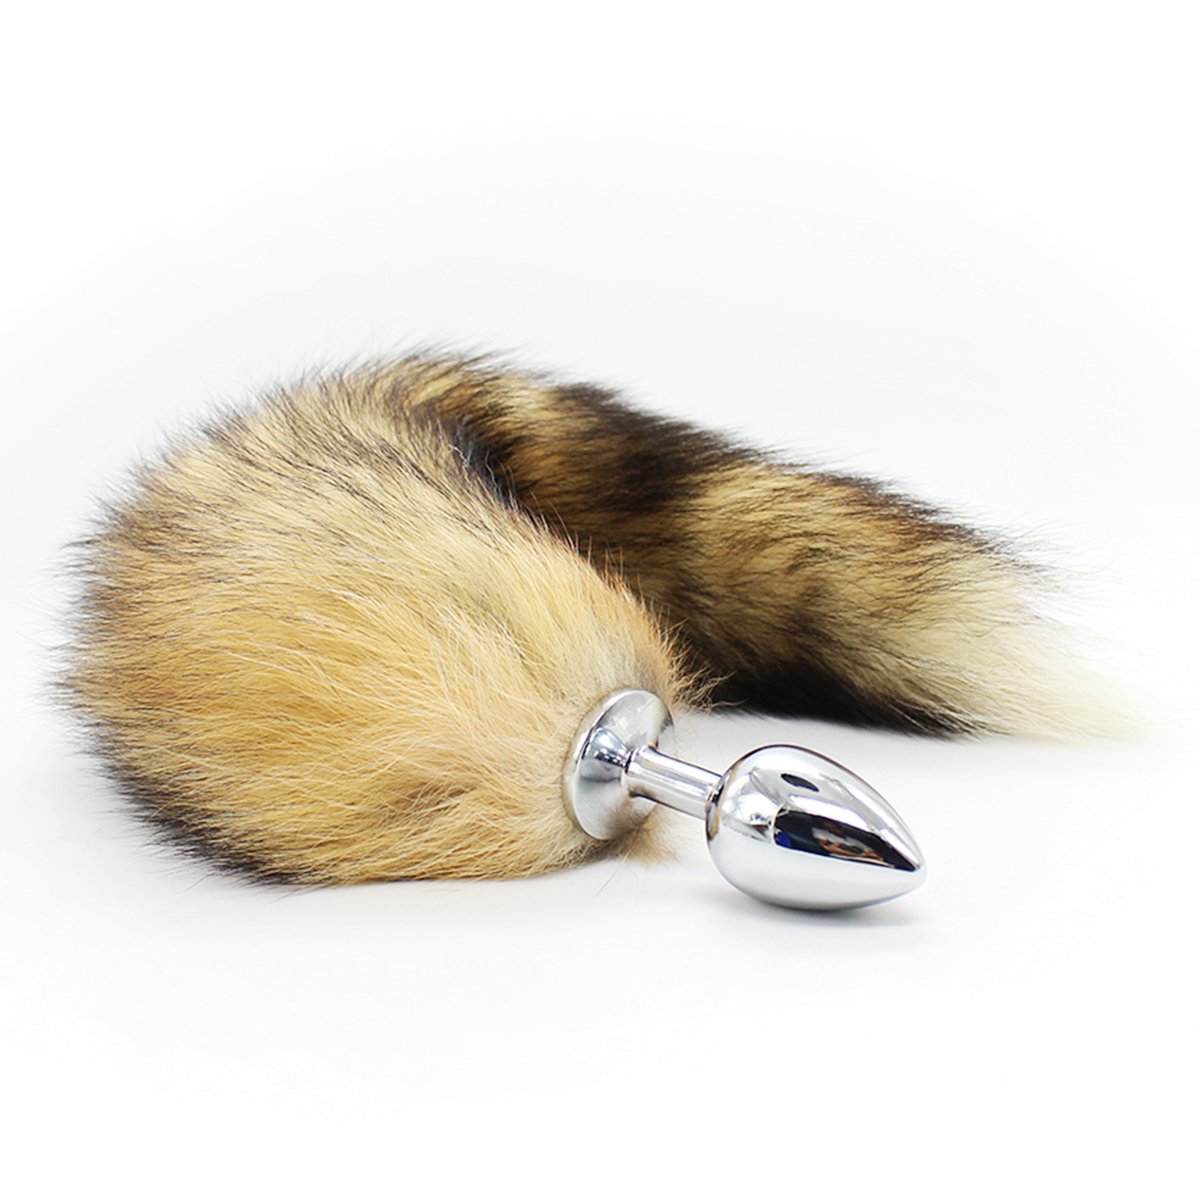 ass plug tail Amazon.com: AKStore Medium Stainless Steel Anal Plug with Soft Wild Fox Tail  plug butt Sex Toys Butt Plug Anal Stimulator for Women: Health & Personal  Care